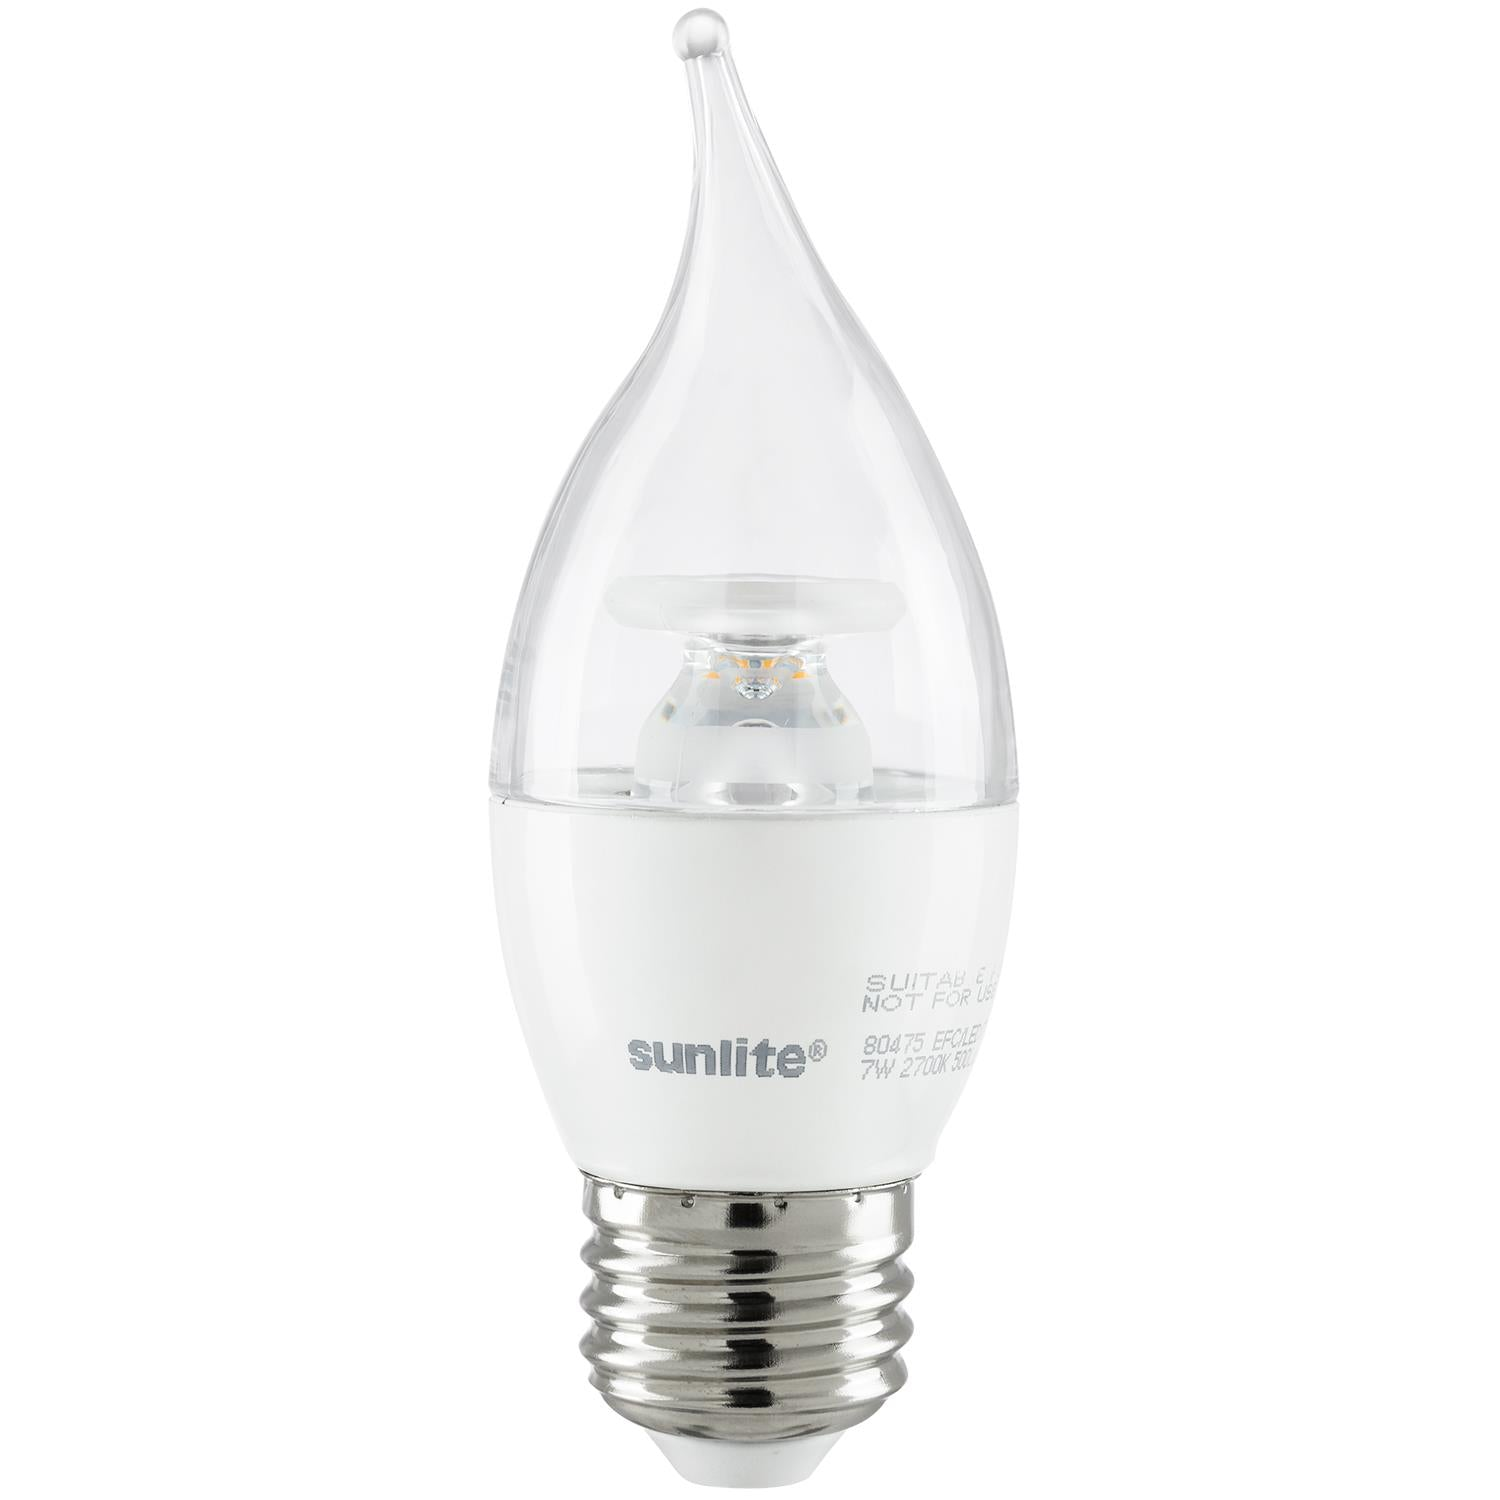 SUNLITE 80475-SU LED Flame Tip Chandelier 7w Light Bulb 2700K Warm White